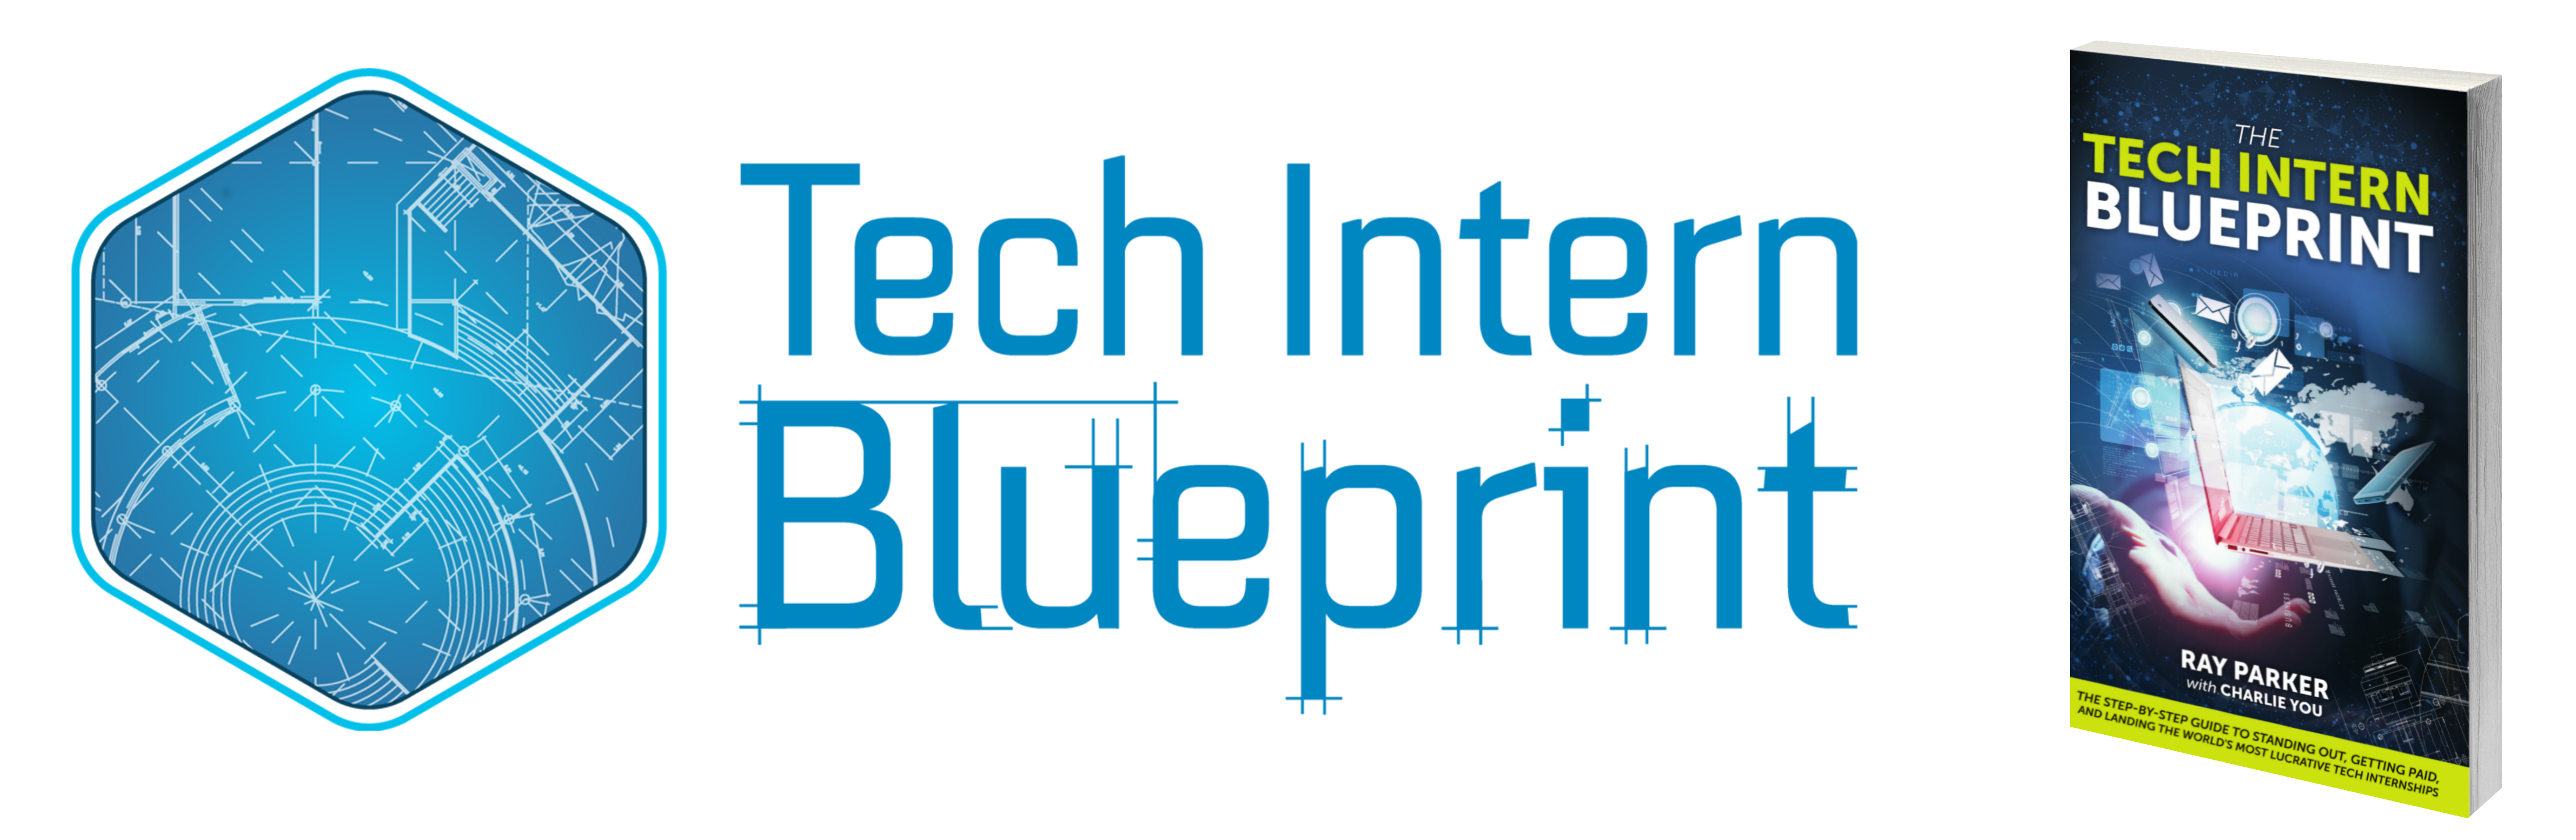 The tech intern blueprint front page of the tech intern bluperint by ray parker malvernweather Image collections